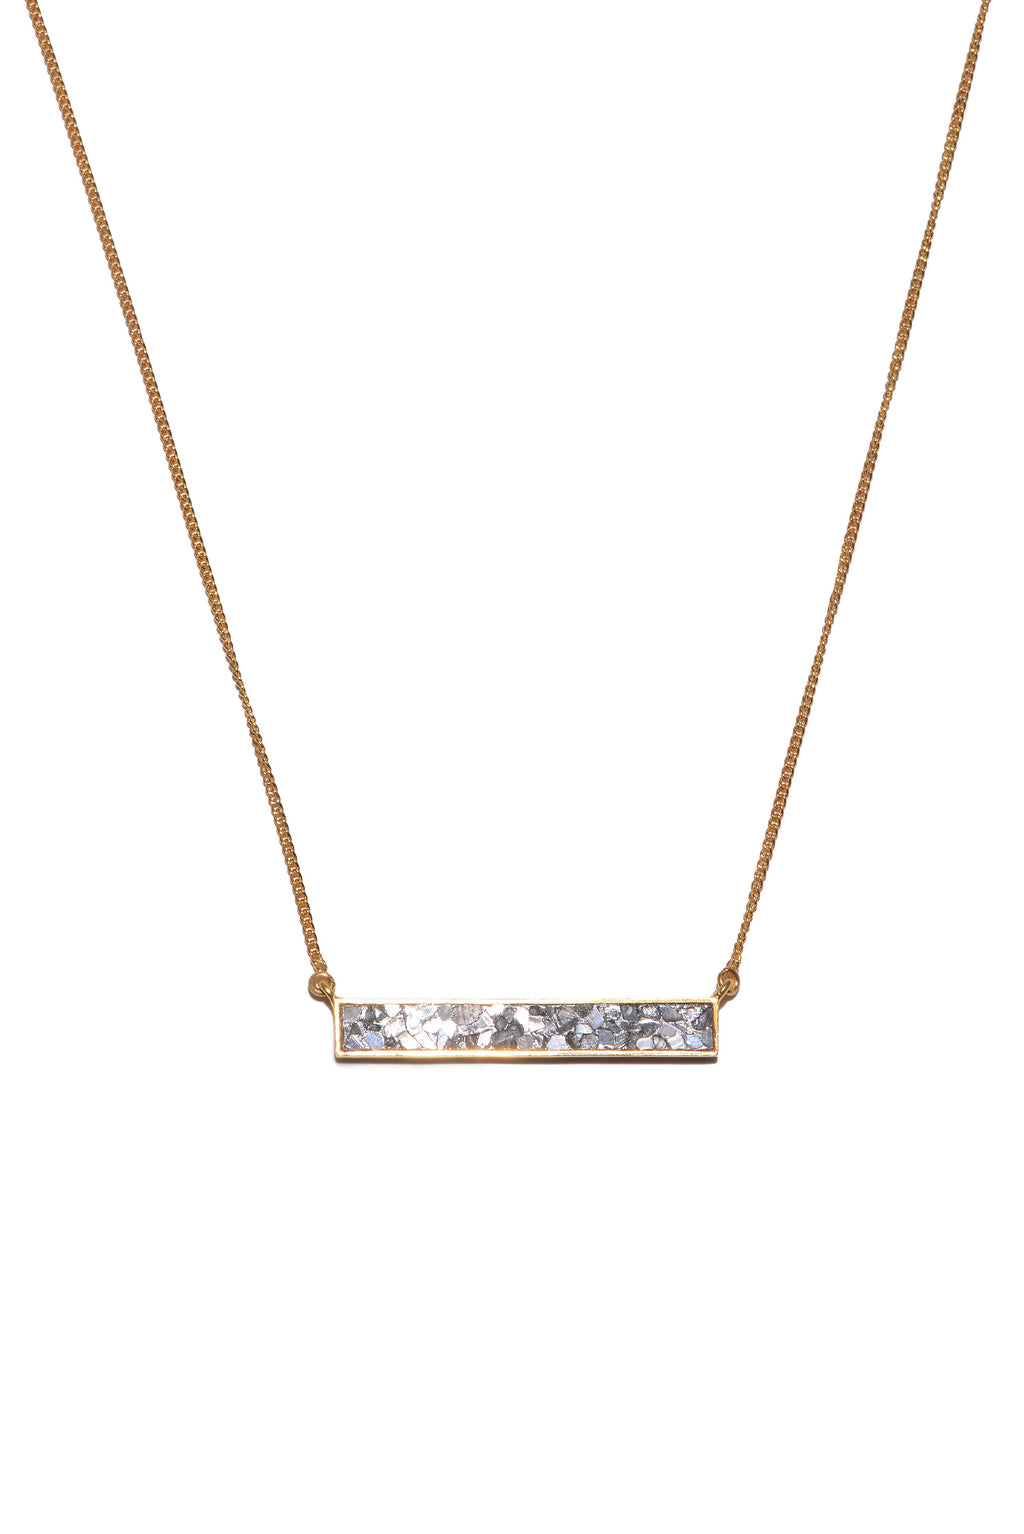 diamond rectangle gold pendant necklace